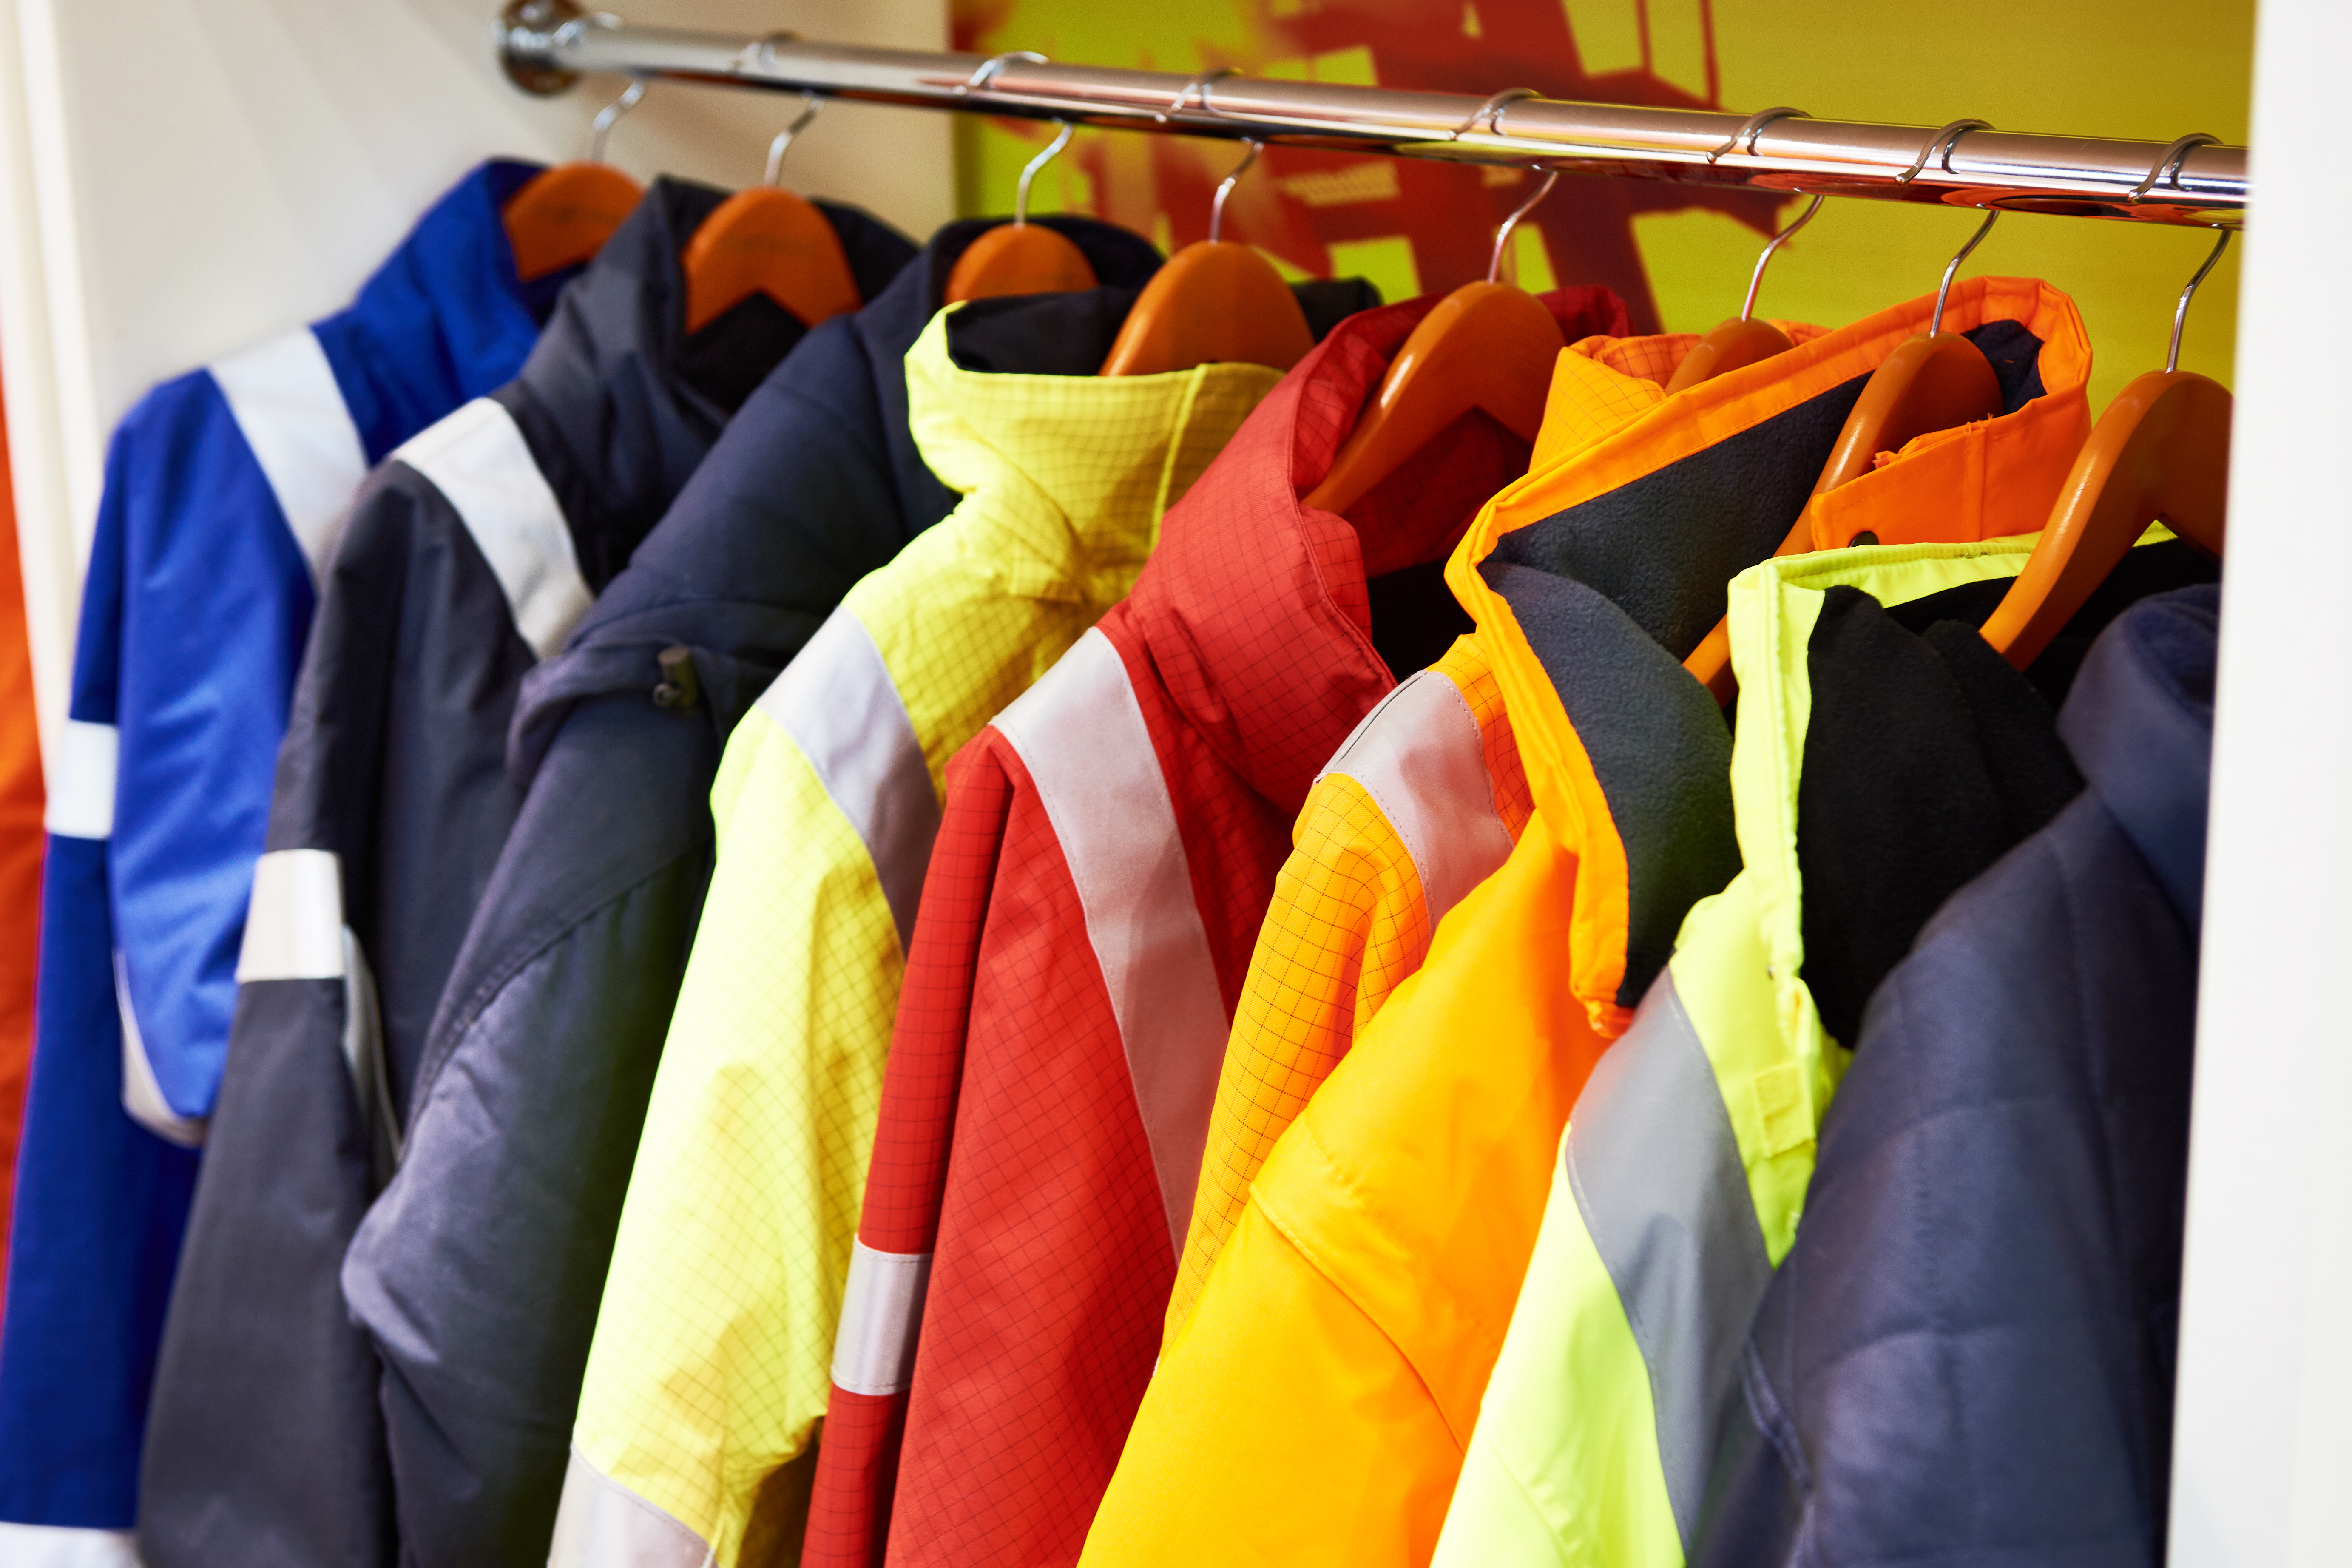 Jackets for workwear: safe work